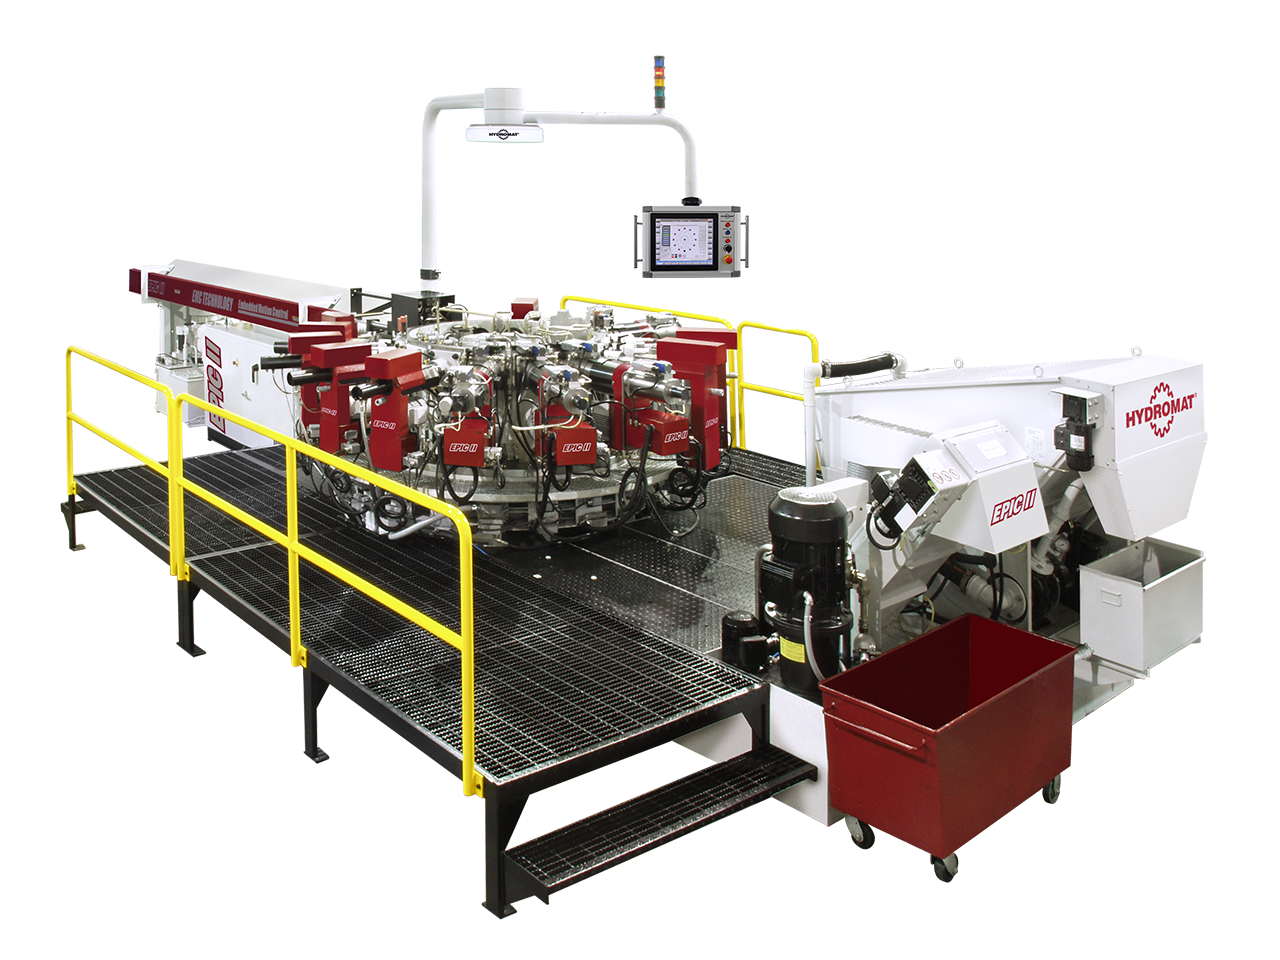 Hydromat EPIC II Rotary Transfer Machines